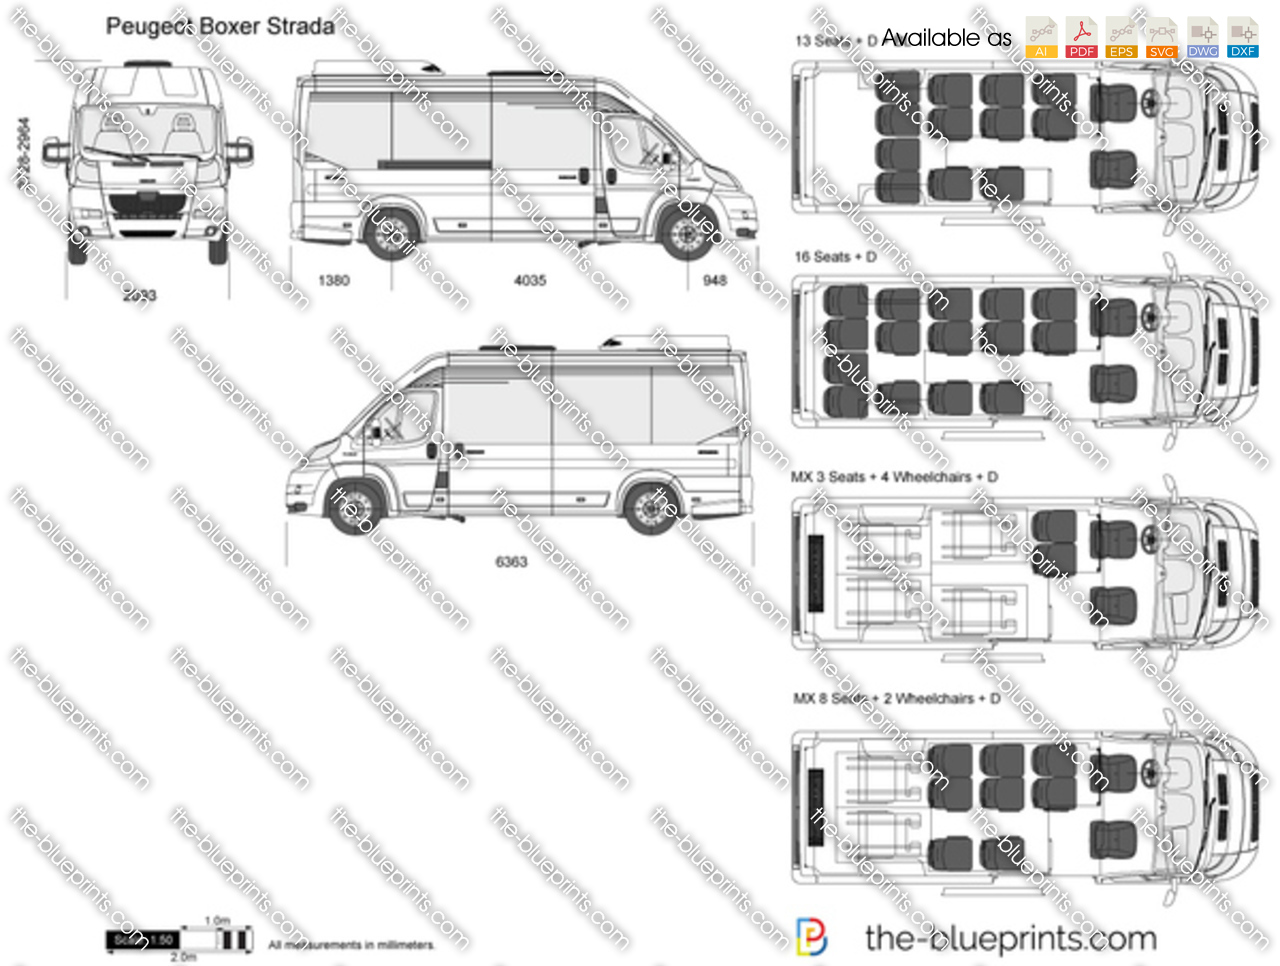 promaster dimensions drawings autos post. Black Bedroom Furniture Sets. Home Design Ideas